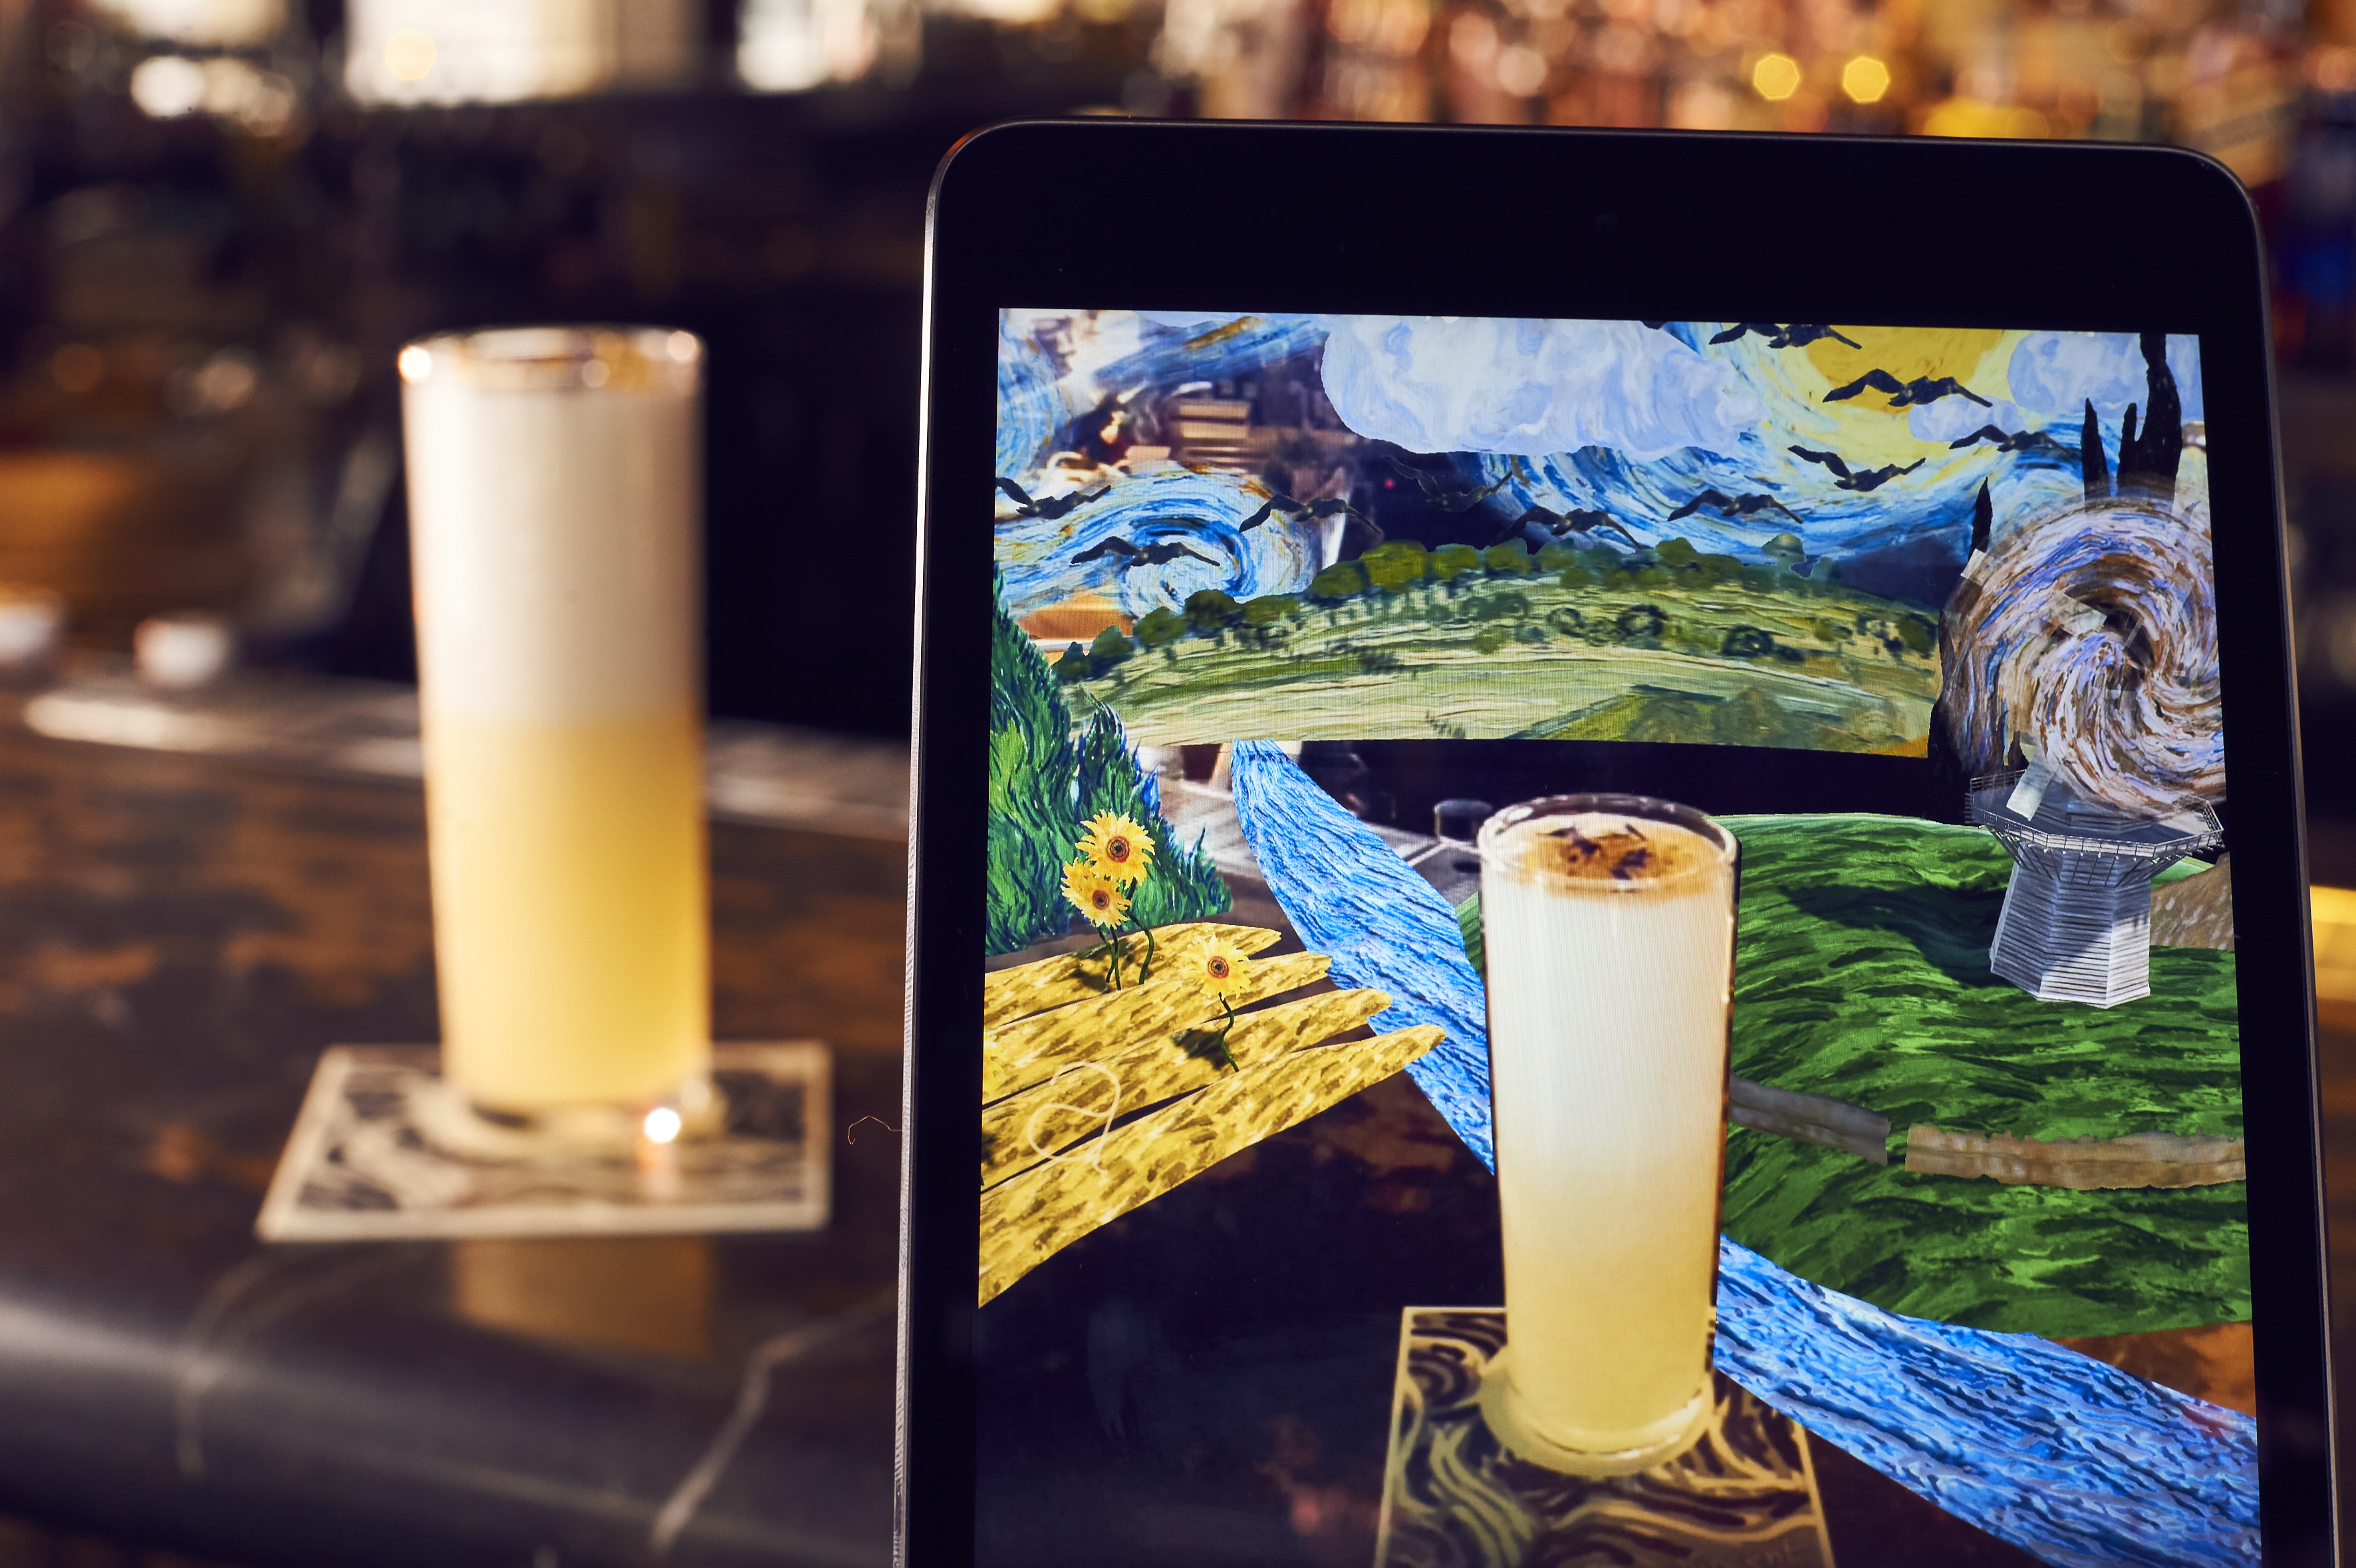 Michelin-starred restaurant to launch augmented reality cocktail menu